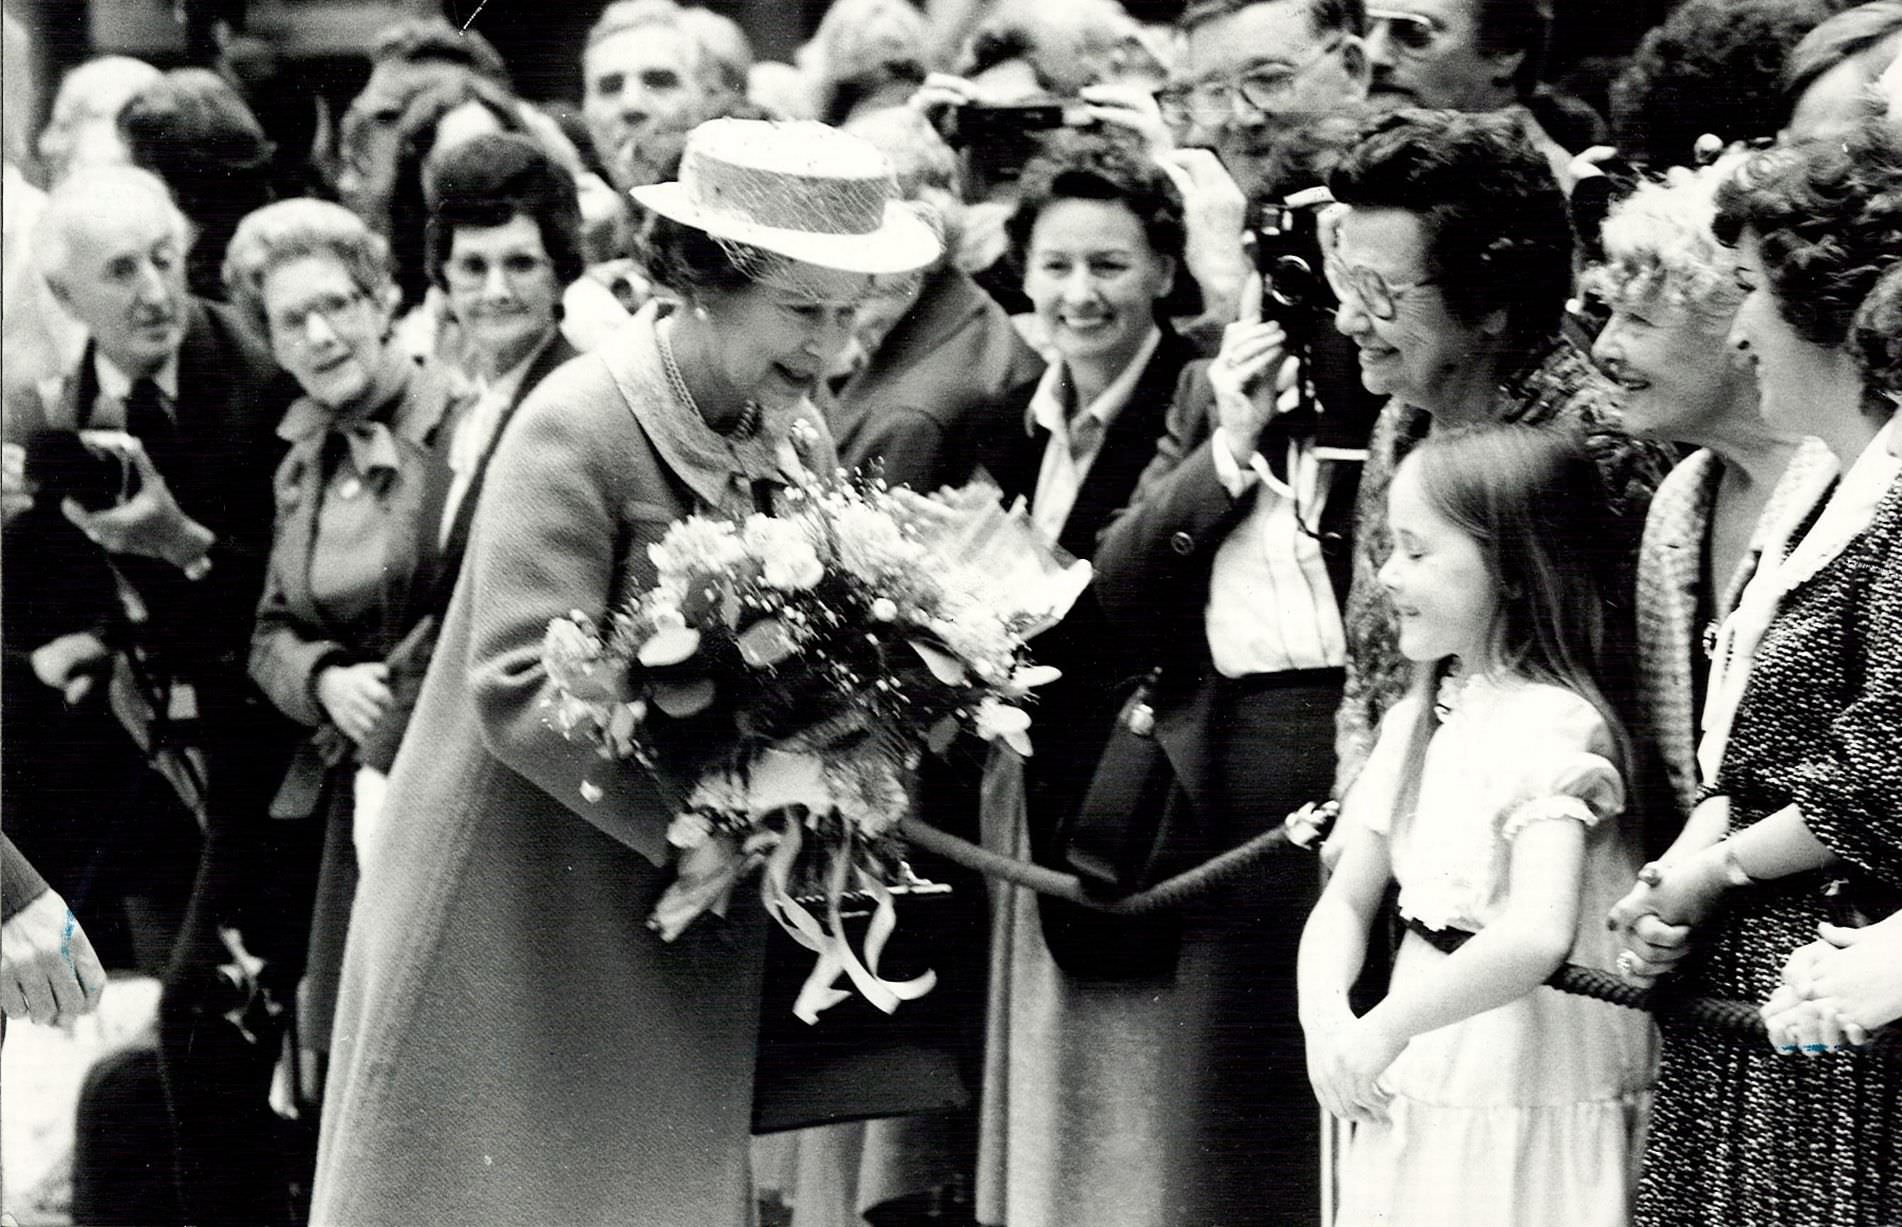 The Queen receiving flowers from the crowd at the opening of Birmingham International Airport, 20th May 1984.